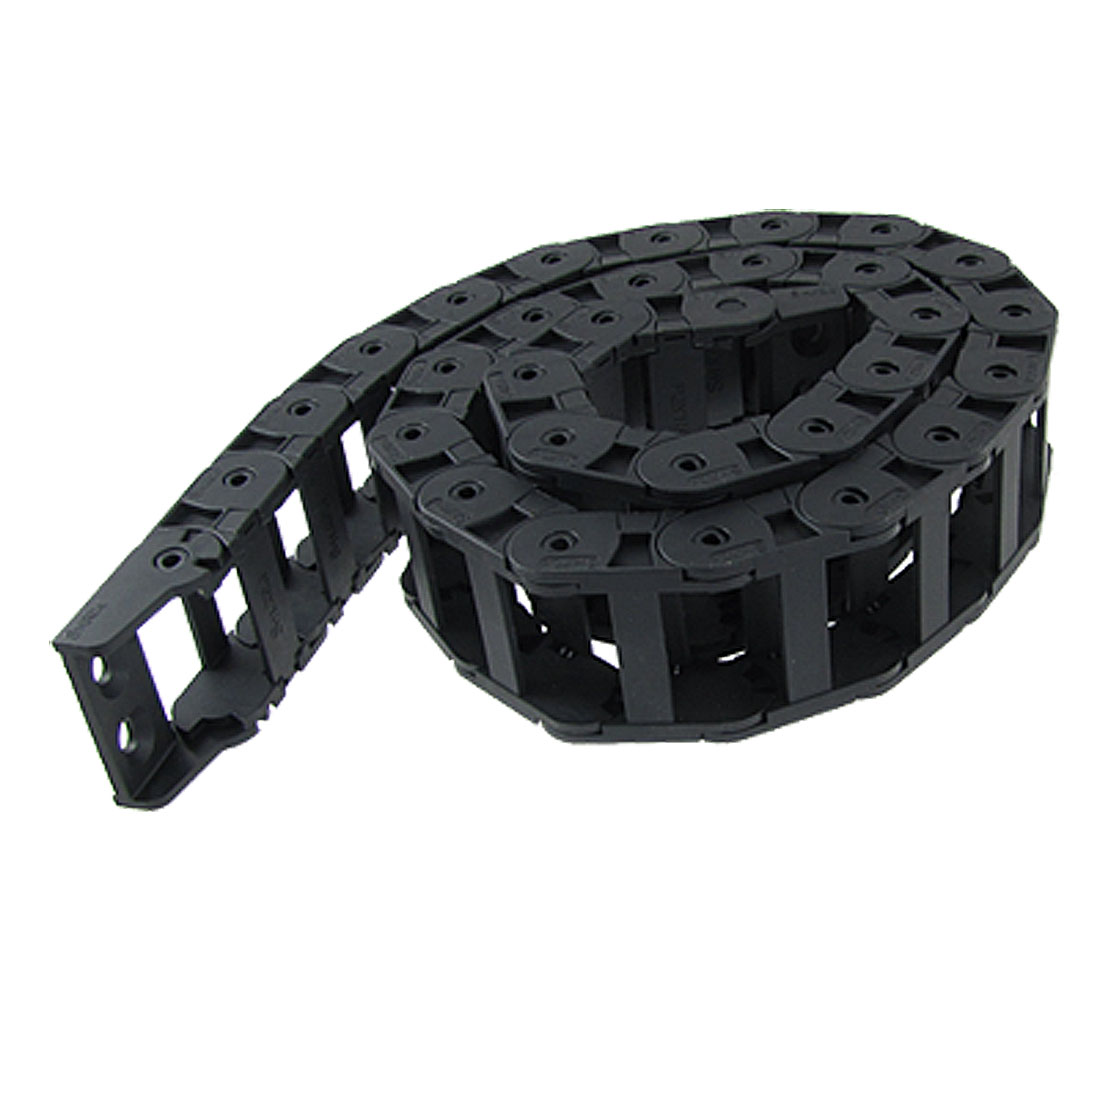 18 x 37mm Plastic Cable Drag Chain Wire Carrier Black 42 1/2""